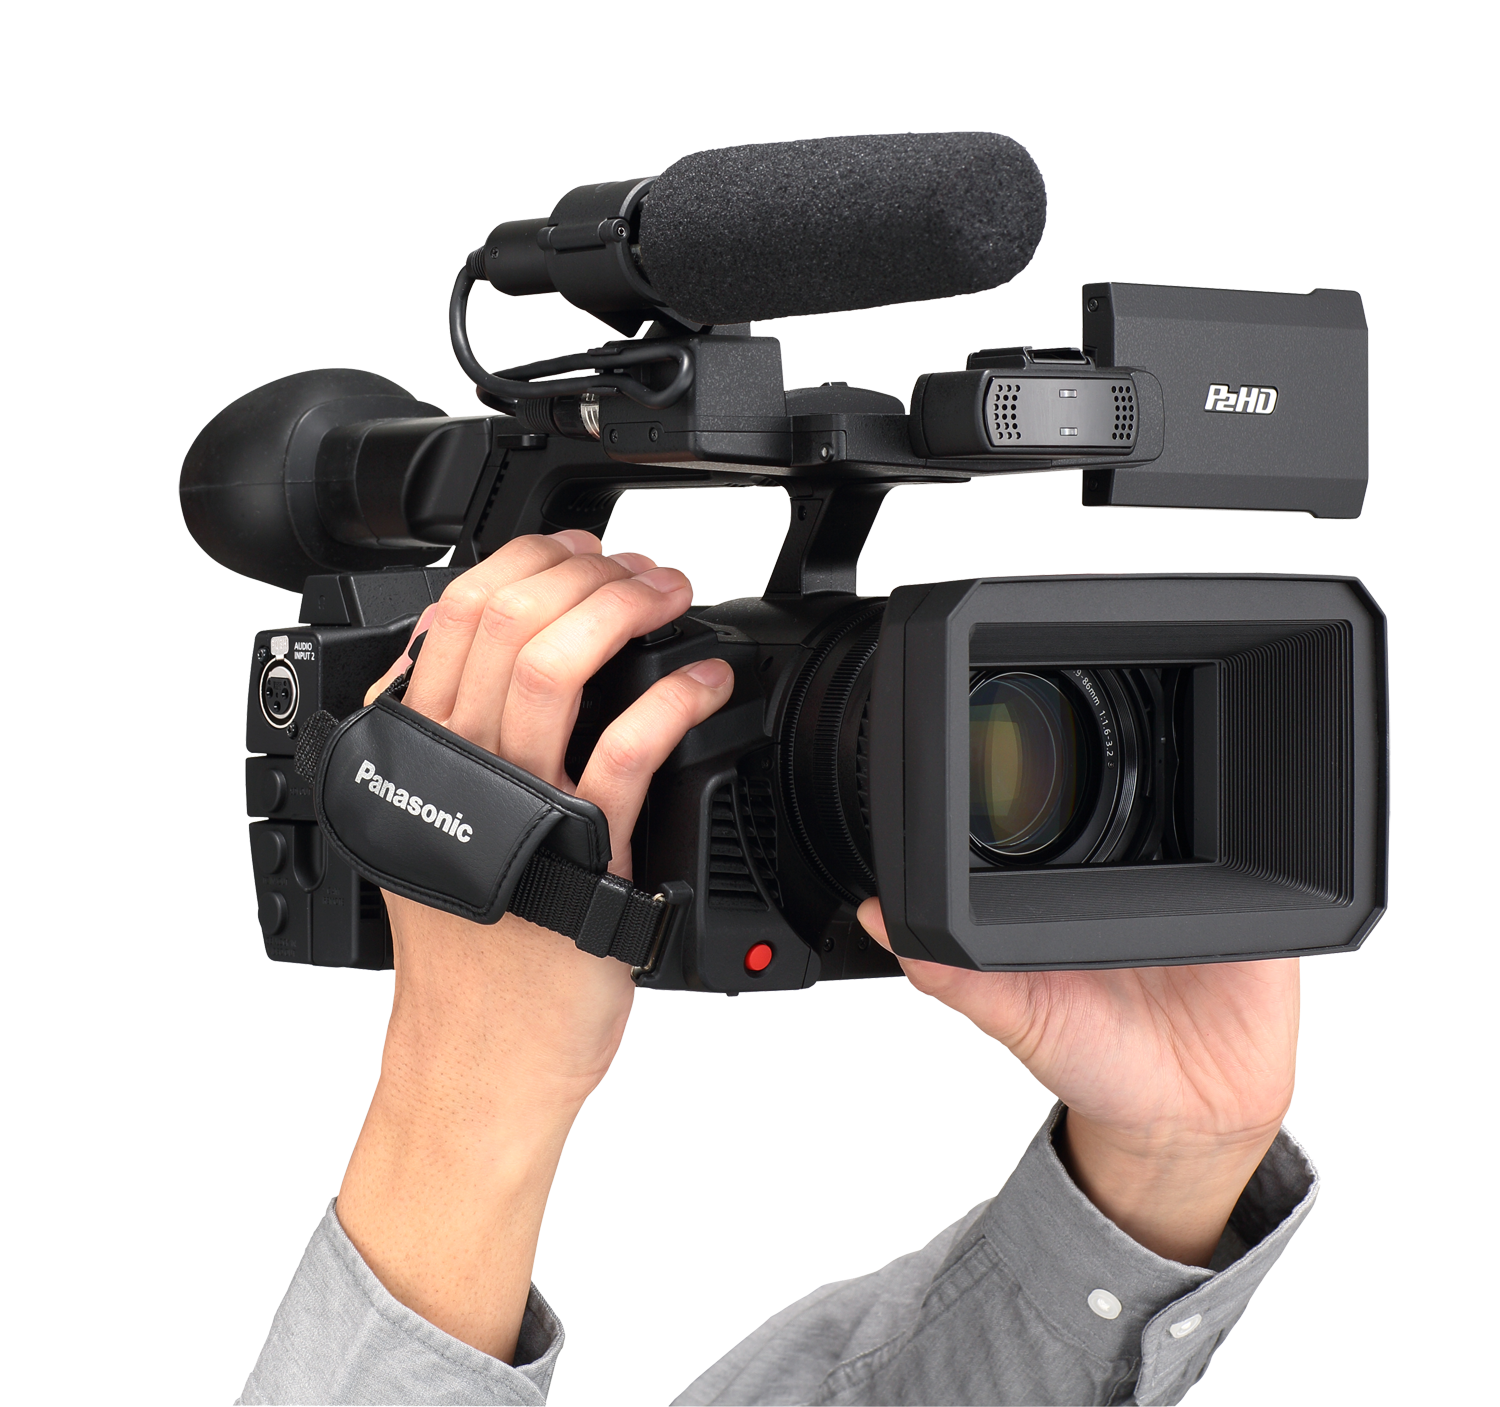 Professional camera solutions Hd video hd video hd video hd video